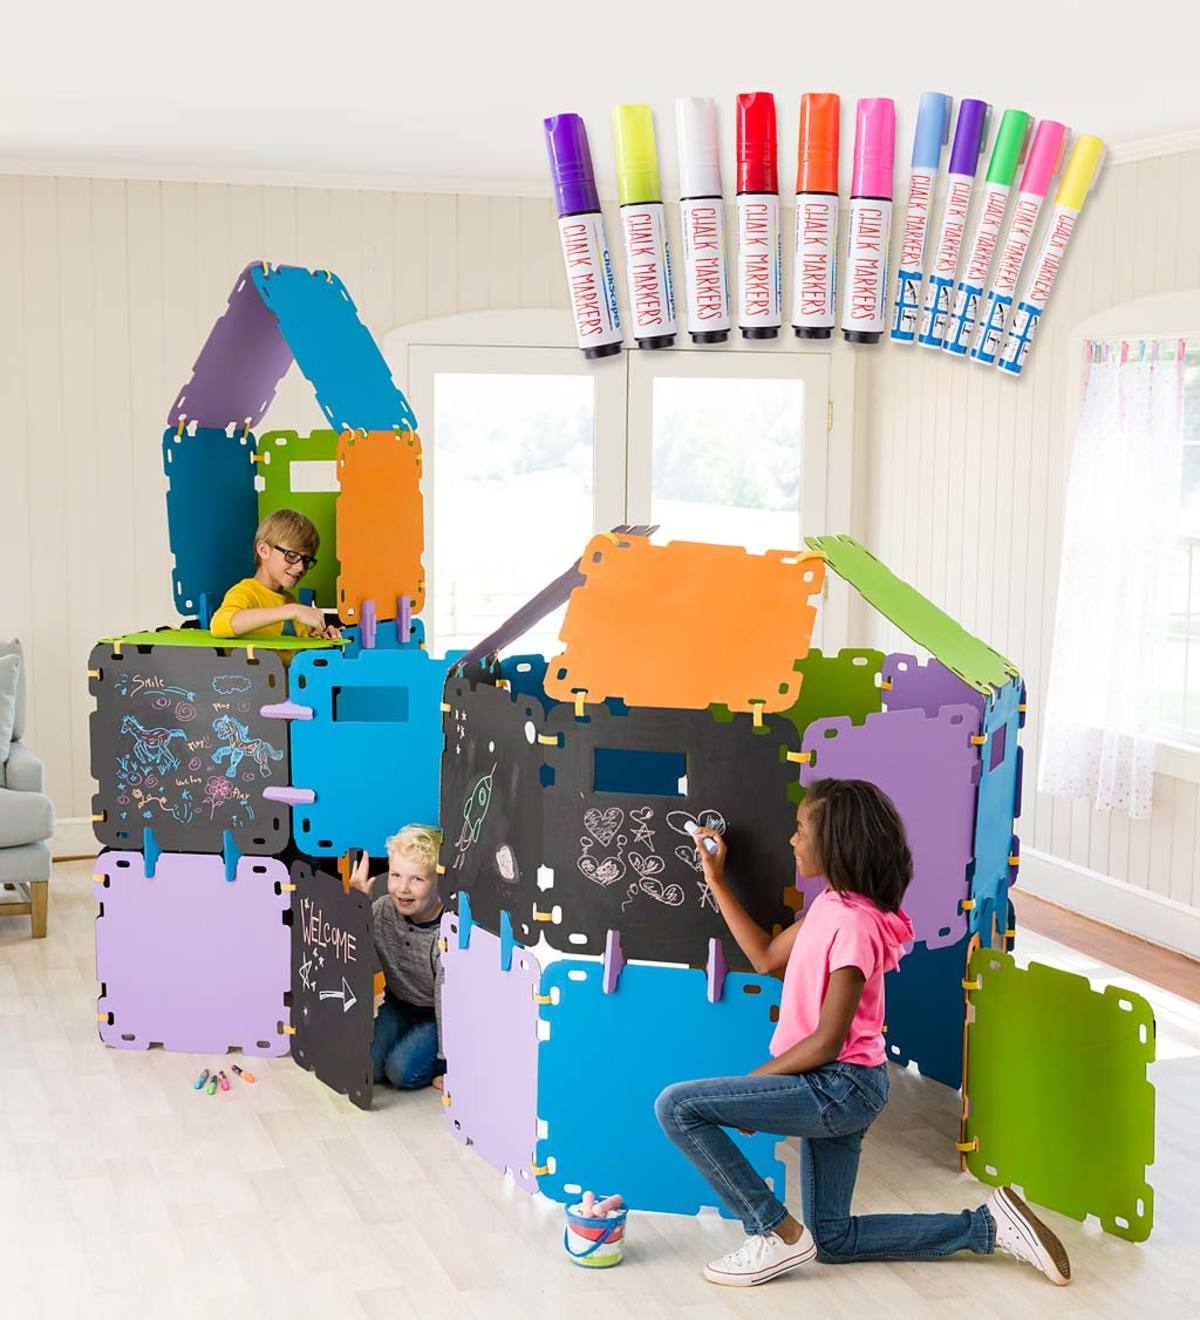 32-Piece Chalkboard Fantasy Fort Special with Chalk Markers Combo Pack